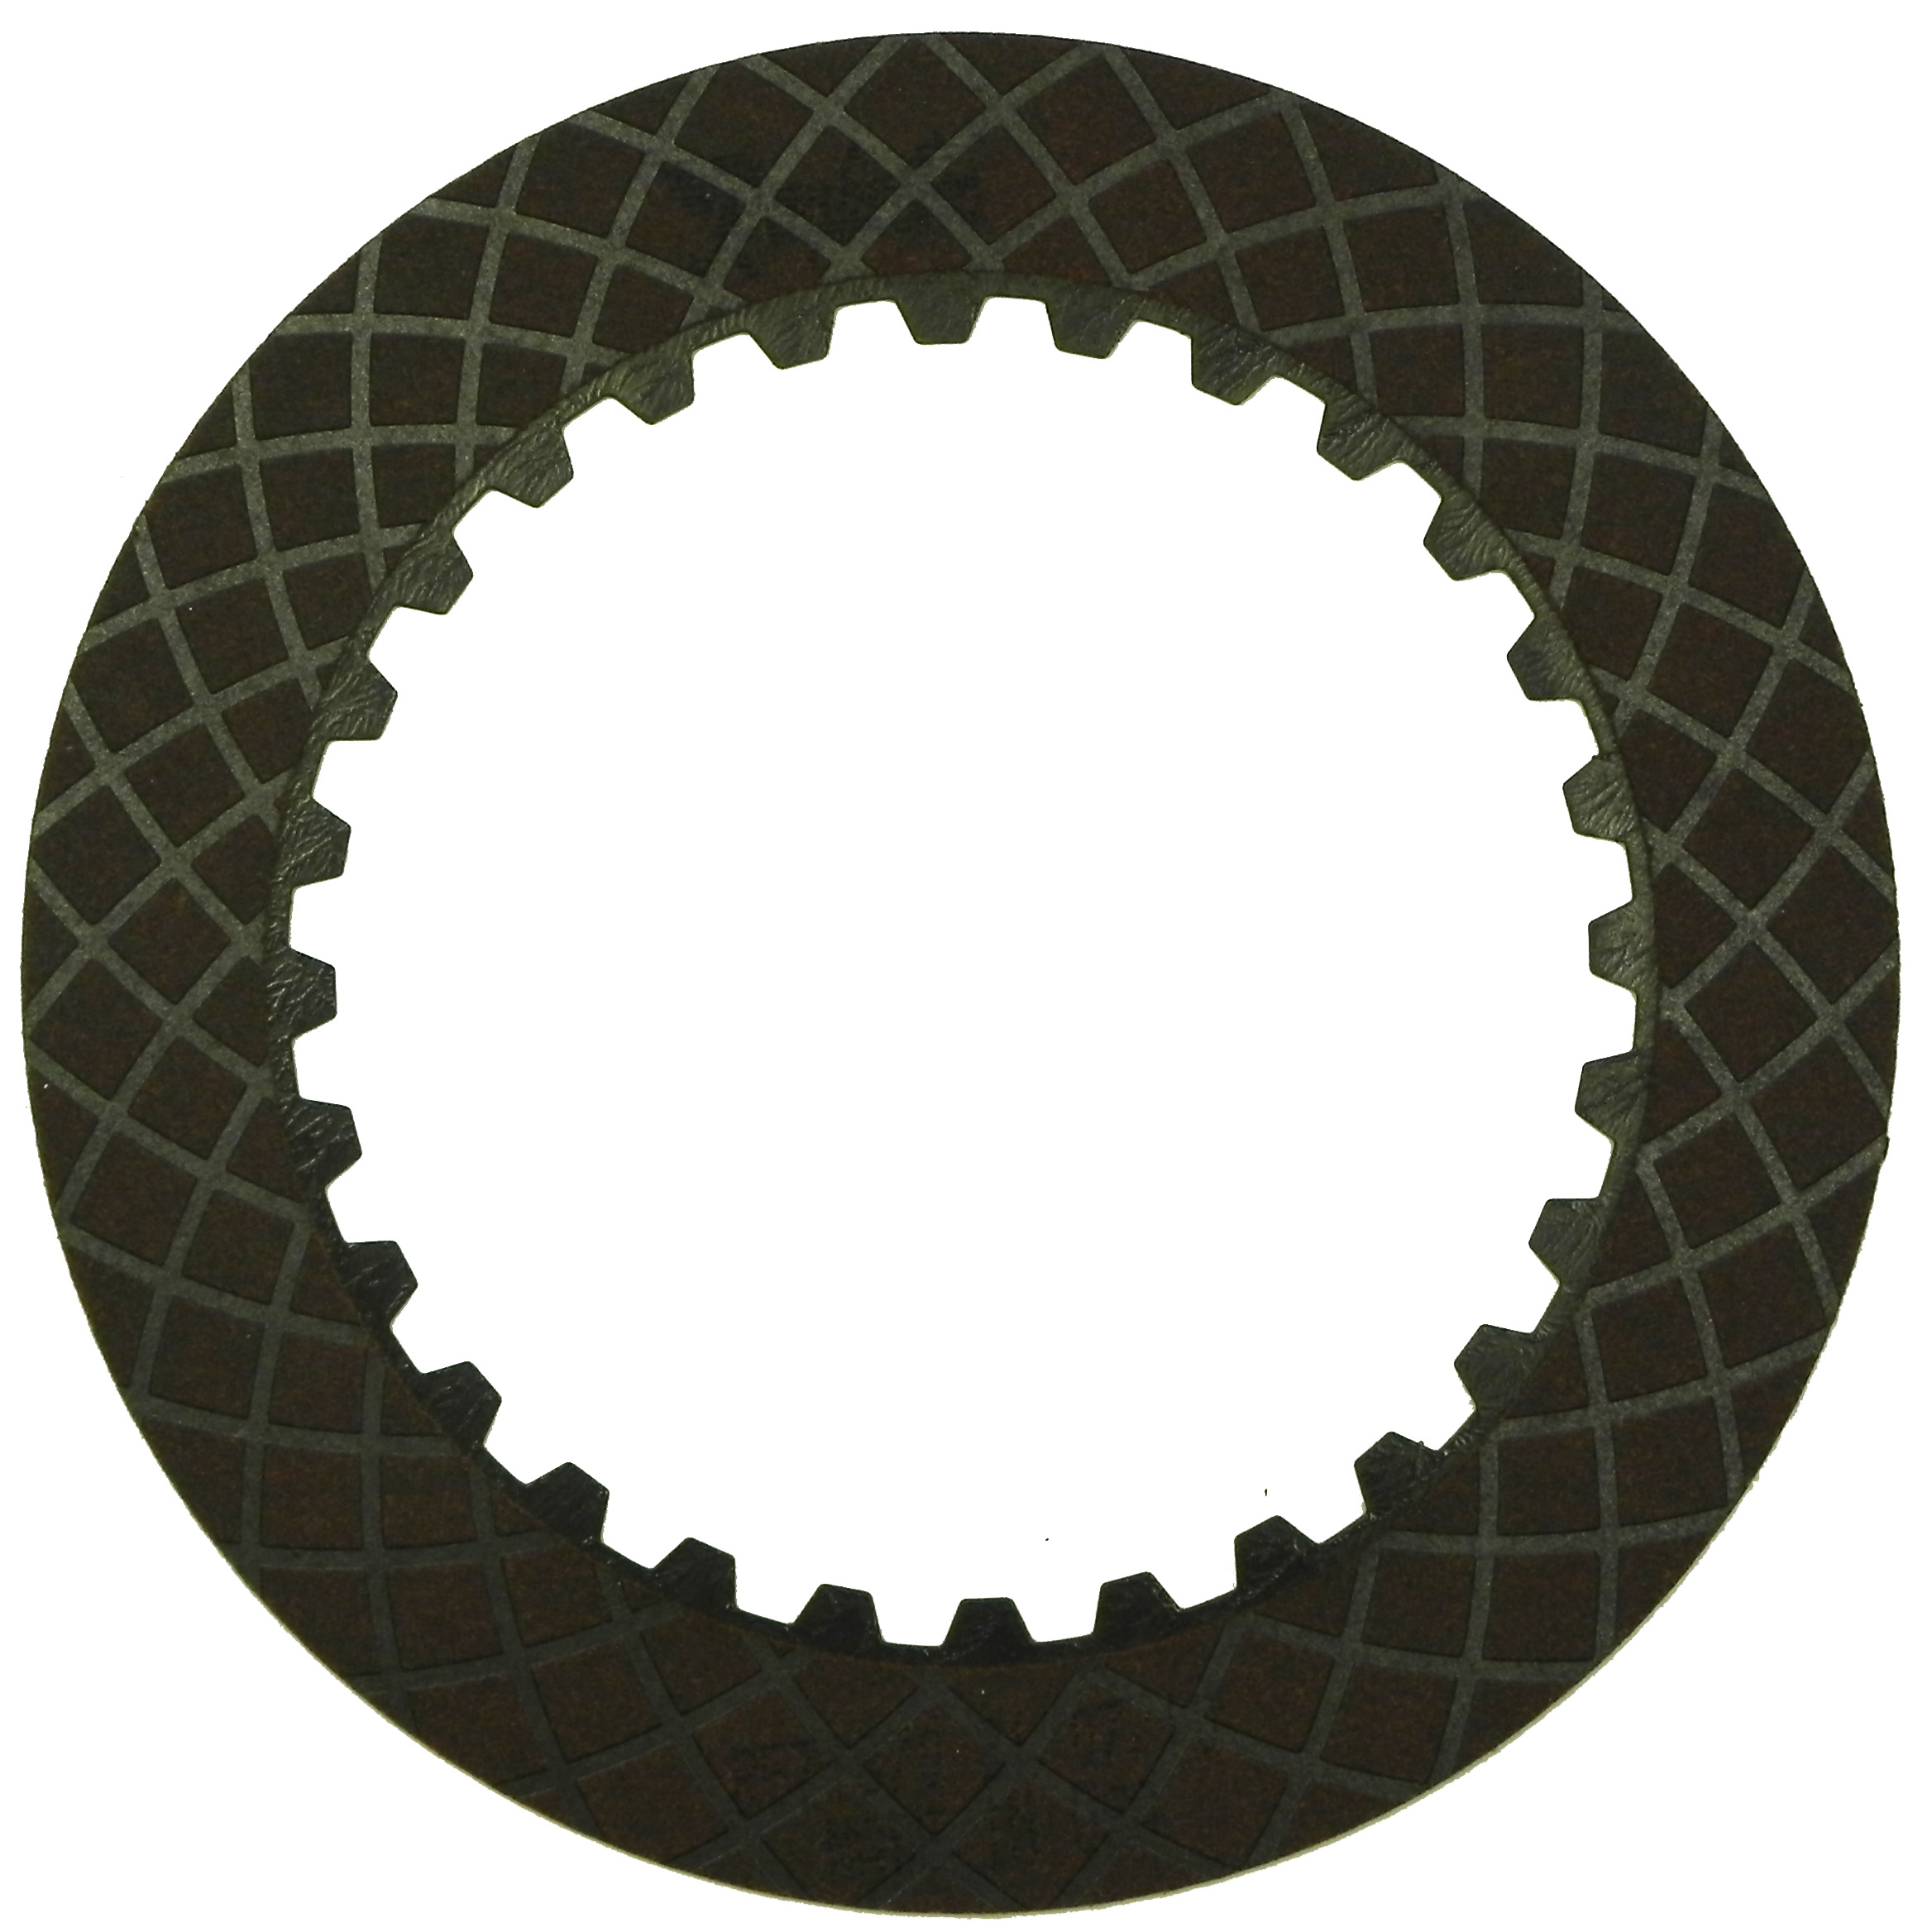 R571870 | 2005-2008 Friction Clutch Plate GPX 2nd GPX